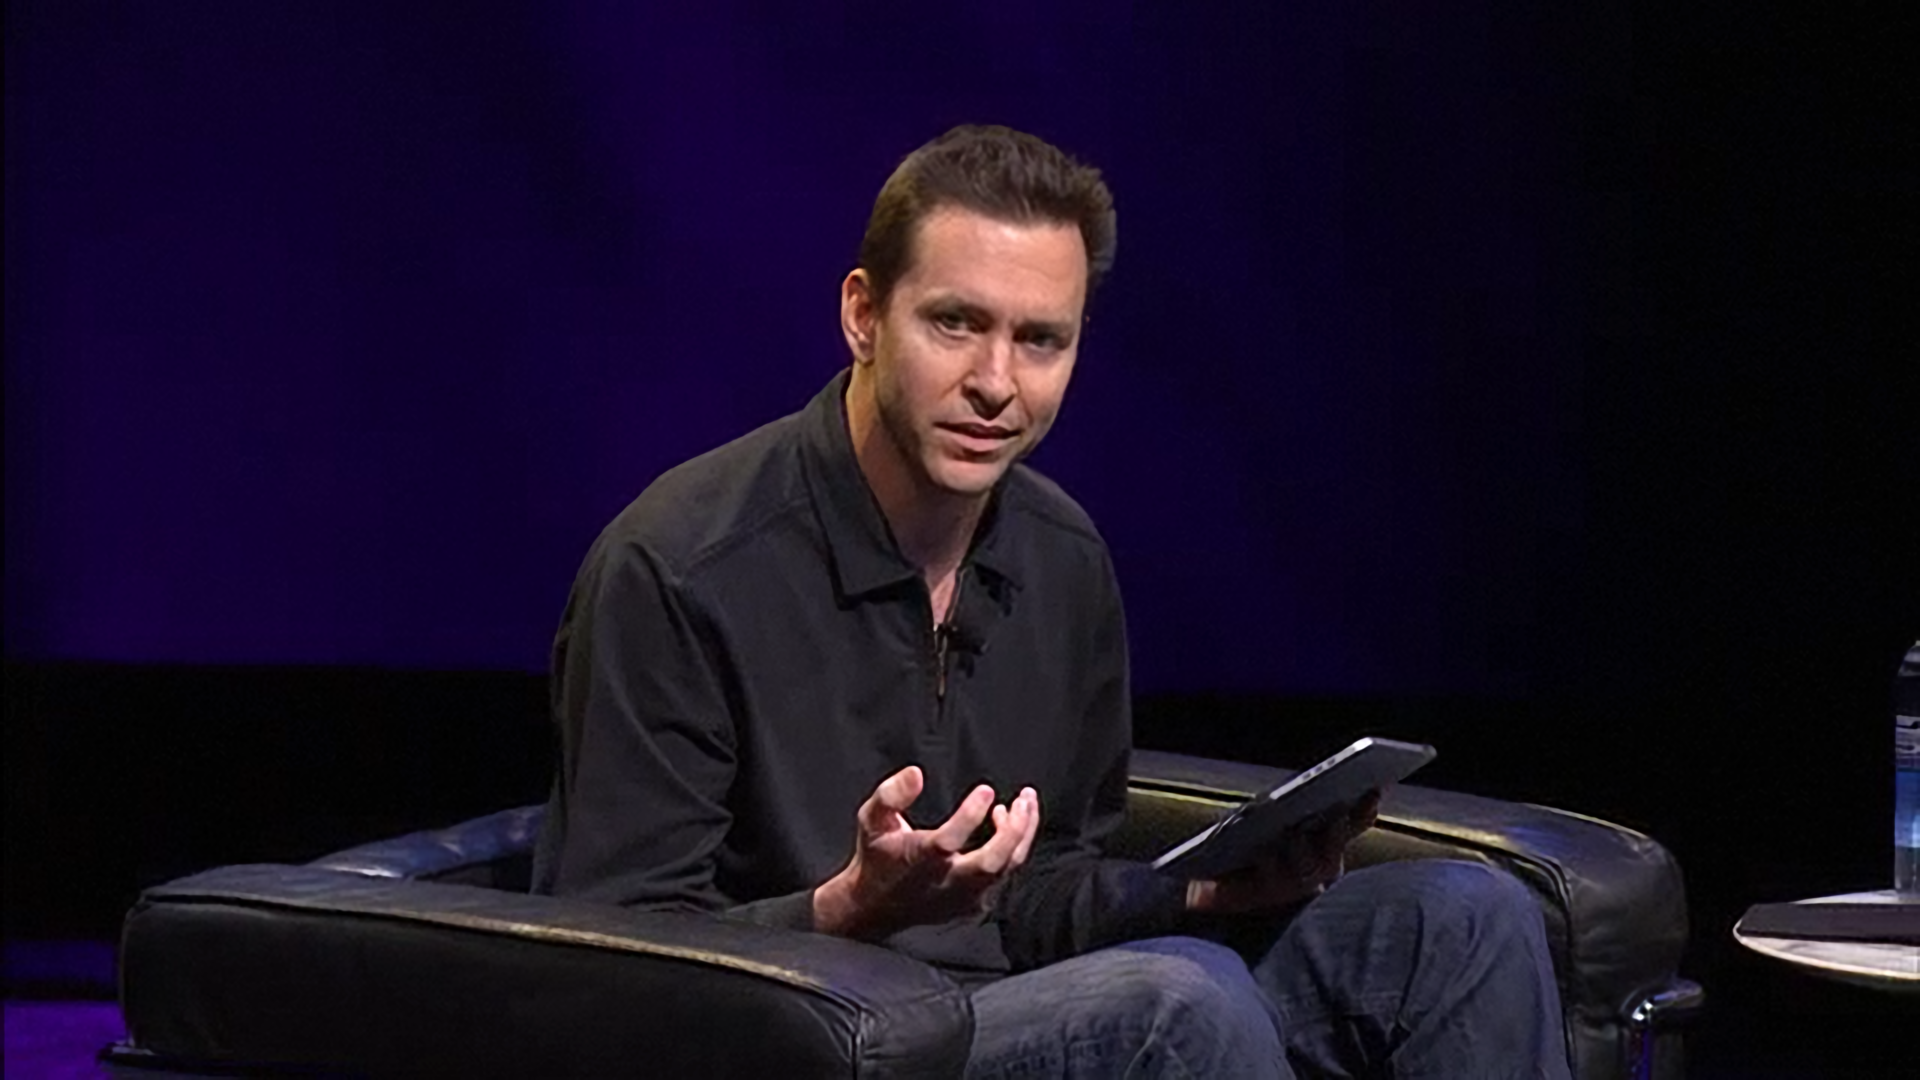 Scott Forstall in the chair.